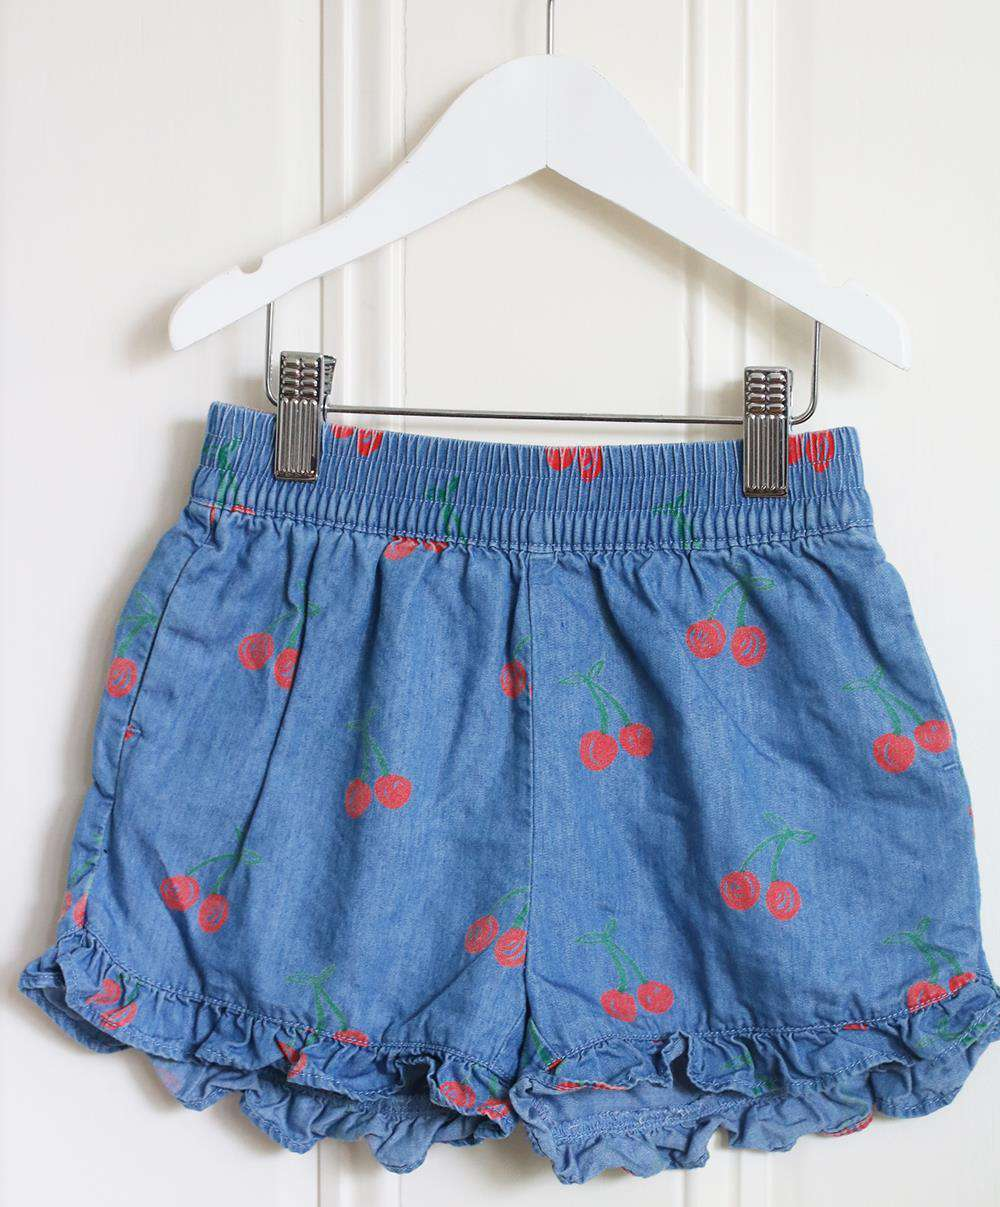 STELLA MCCARTNEY KIDS GIRLS CHERRY PRINT CHAMBRAY SHORTS 5 YEARS